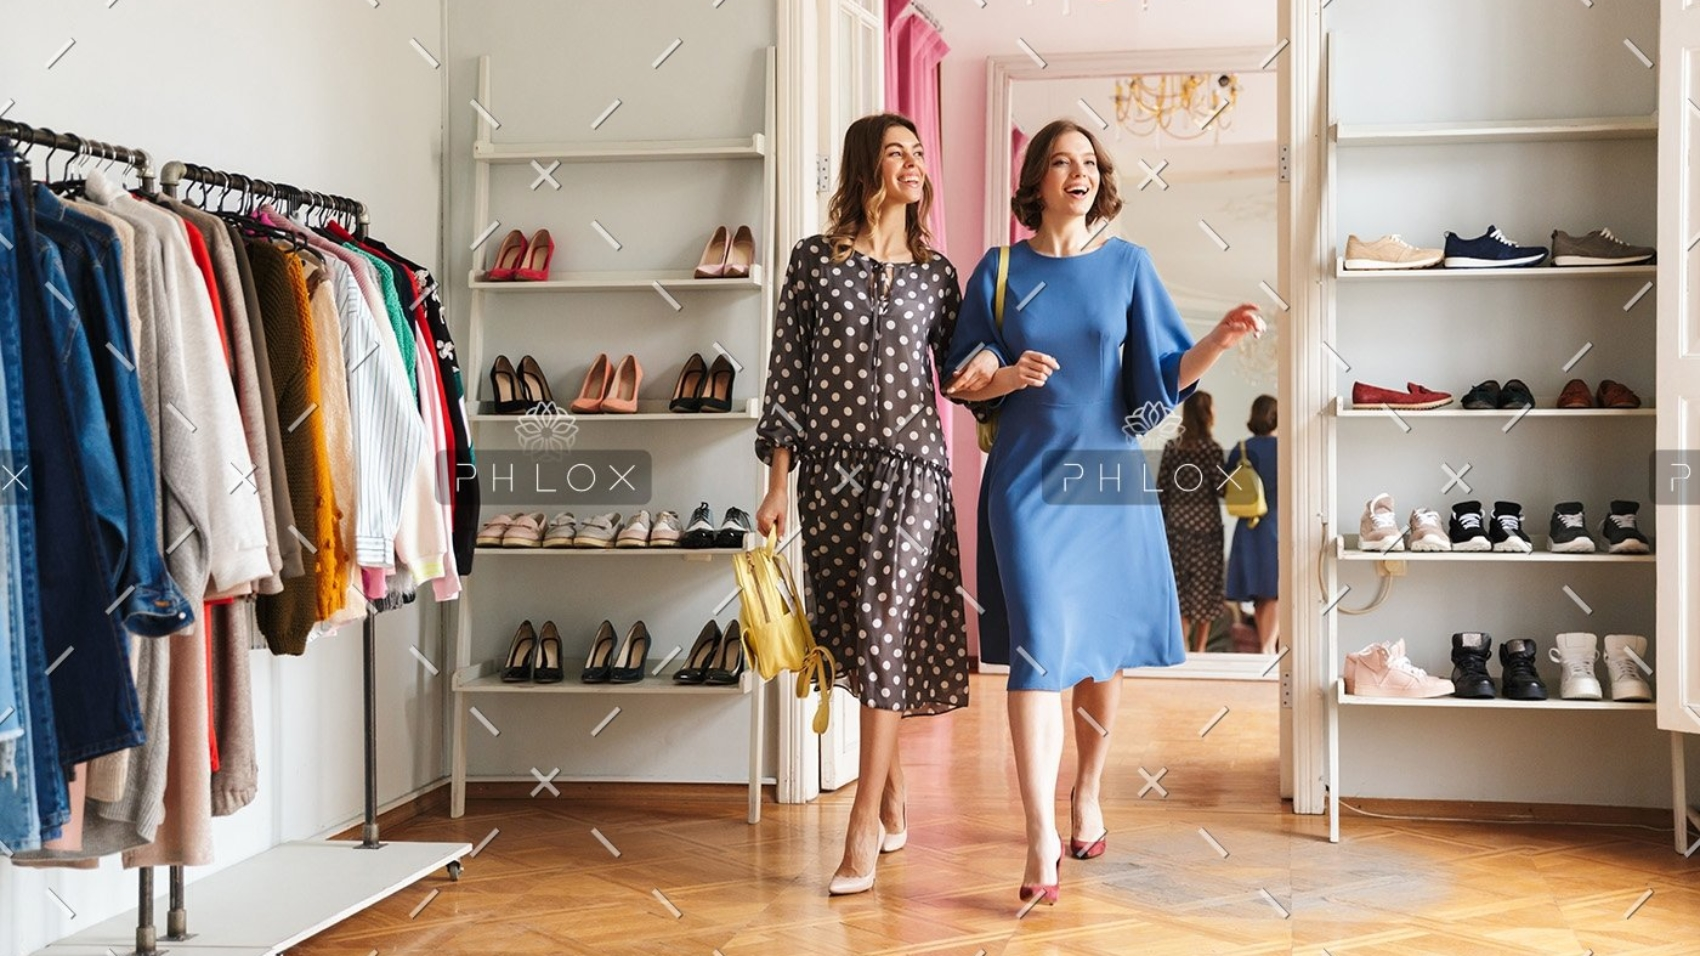 demo-attachment-152-two-pretty-young-women-shopaholics-P2R9ZTE